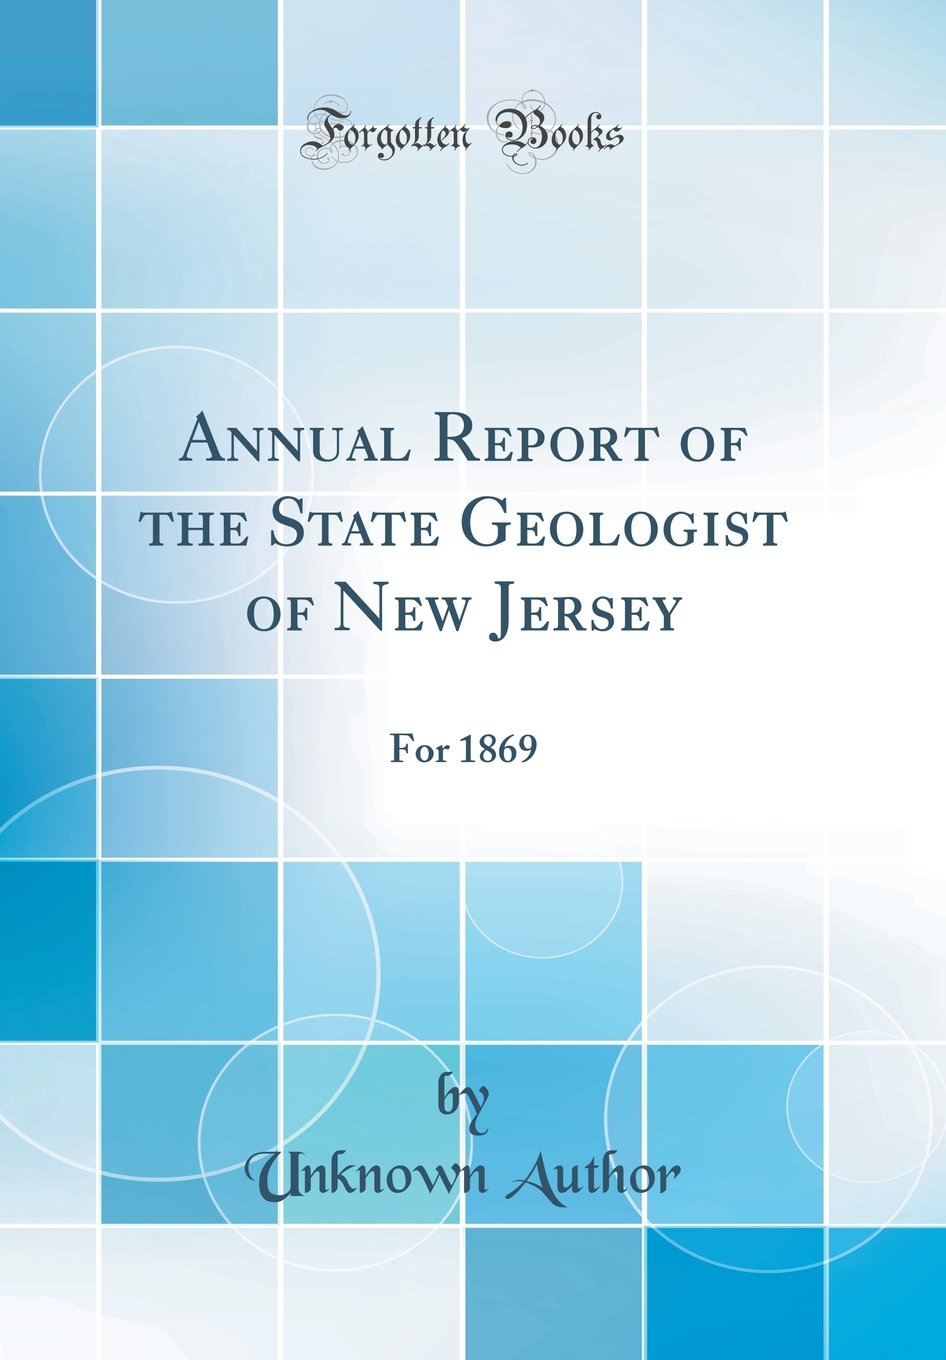 Annual Report of the State Geologist of New Jersey: For 1869 (Classic Reprint) PDF